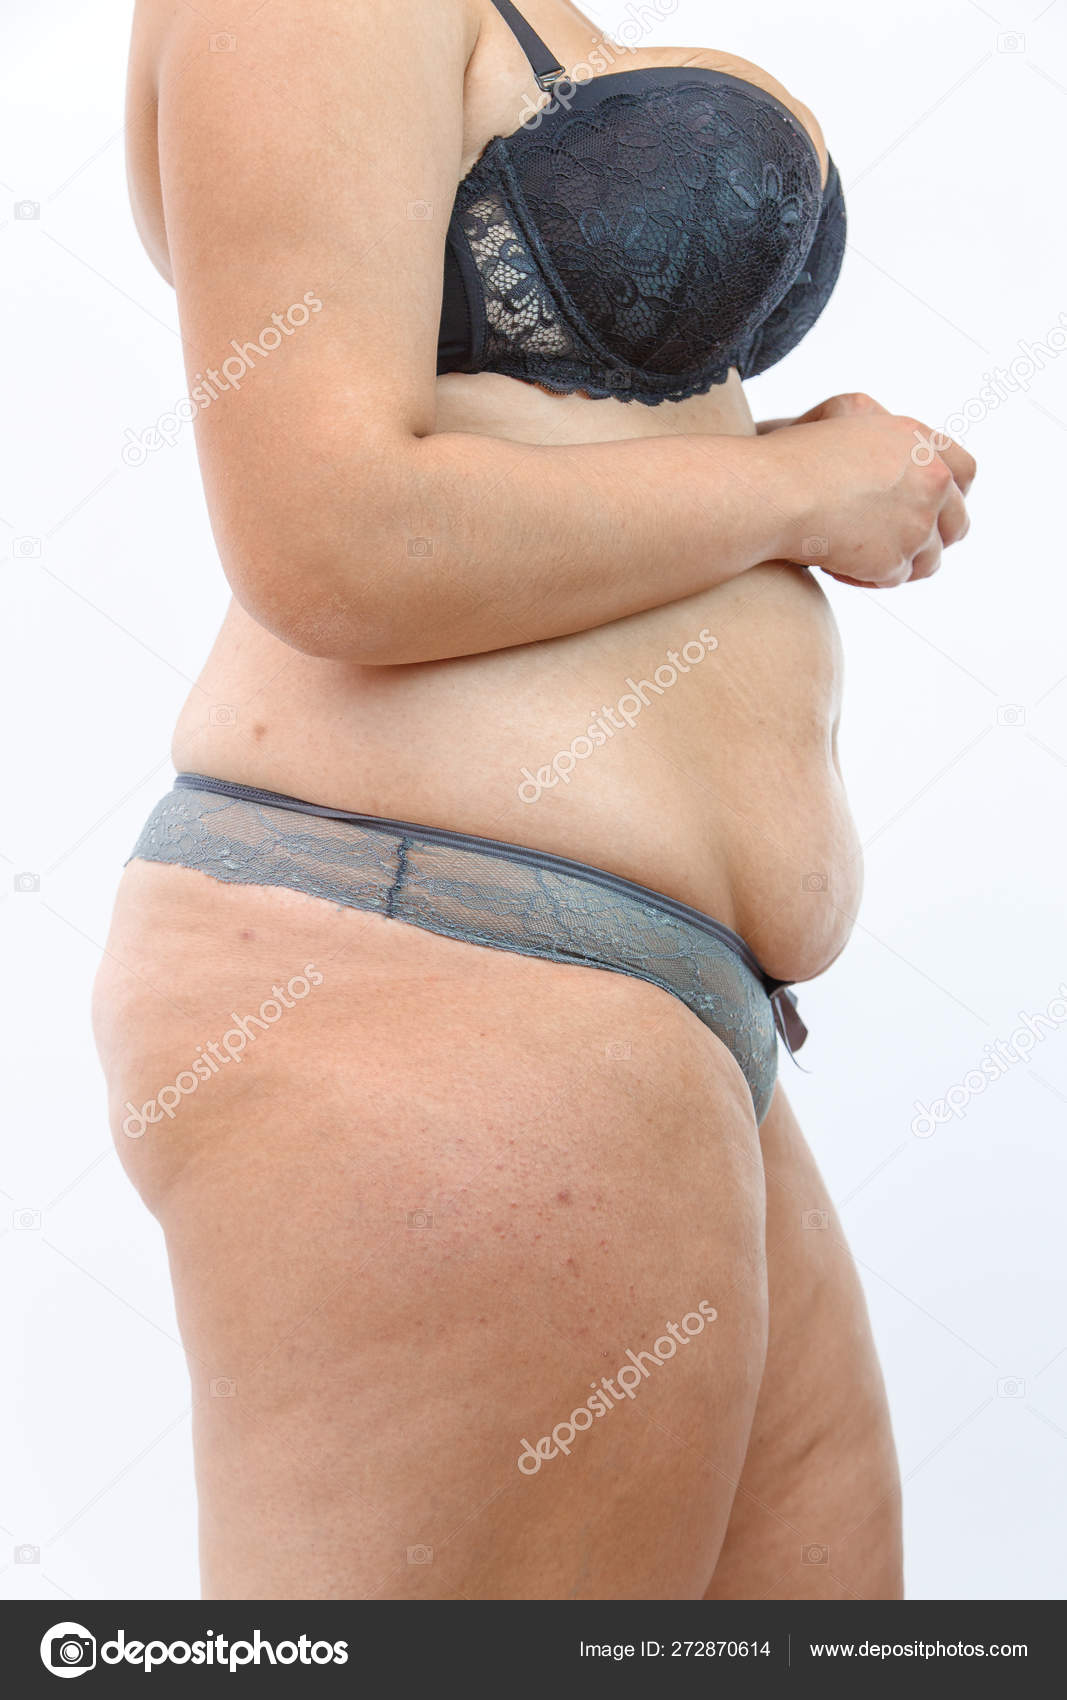 Big Belly And Cellulite Fat Legs Of Overweighted Woman Isolated Stock Photo C Ajphotos 272870614